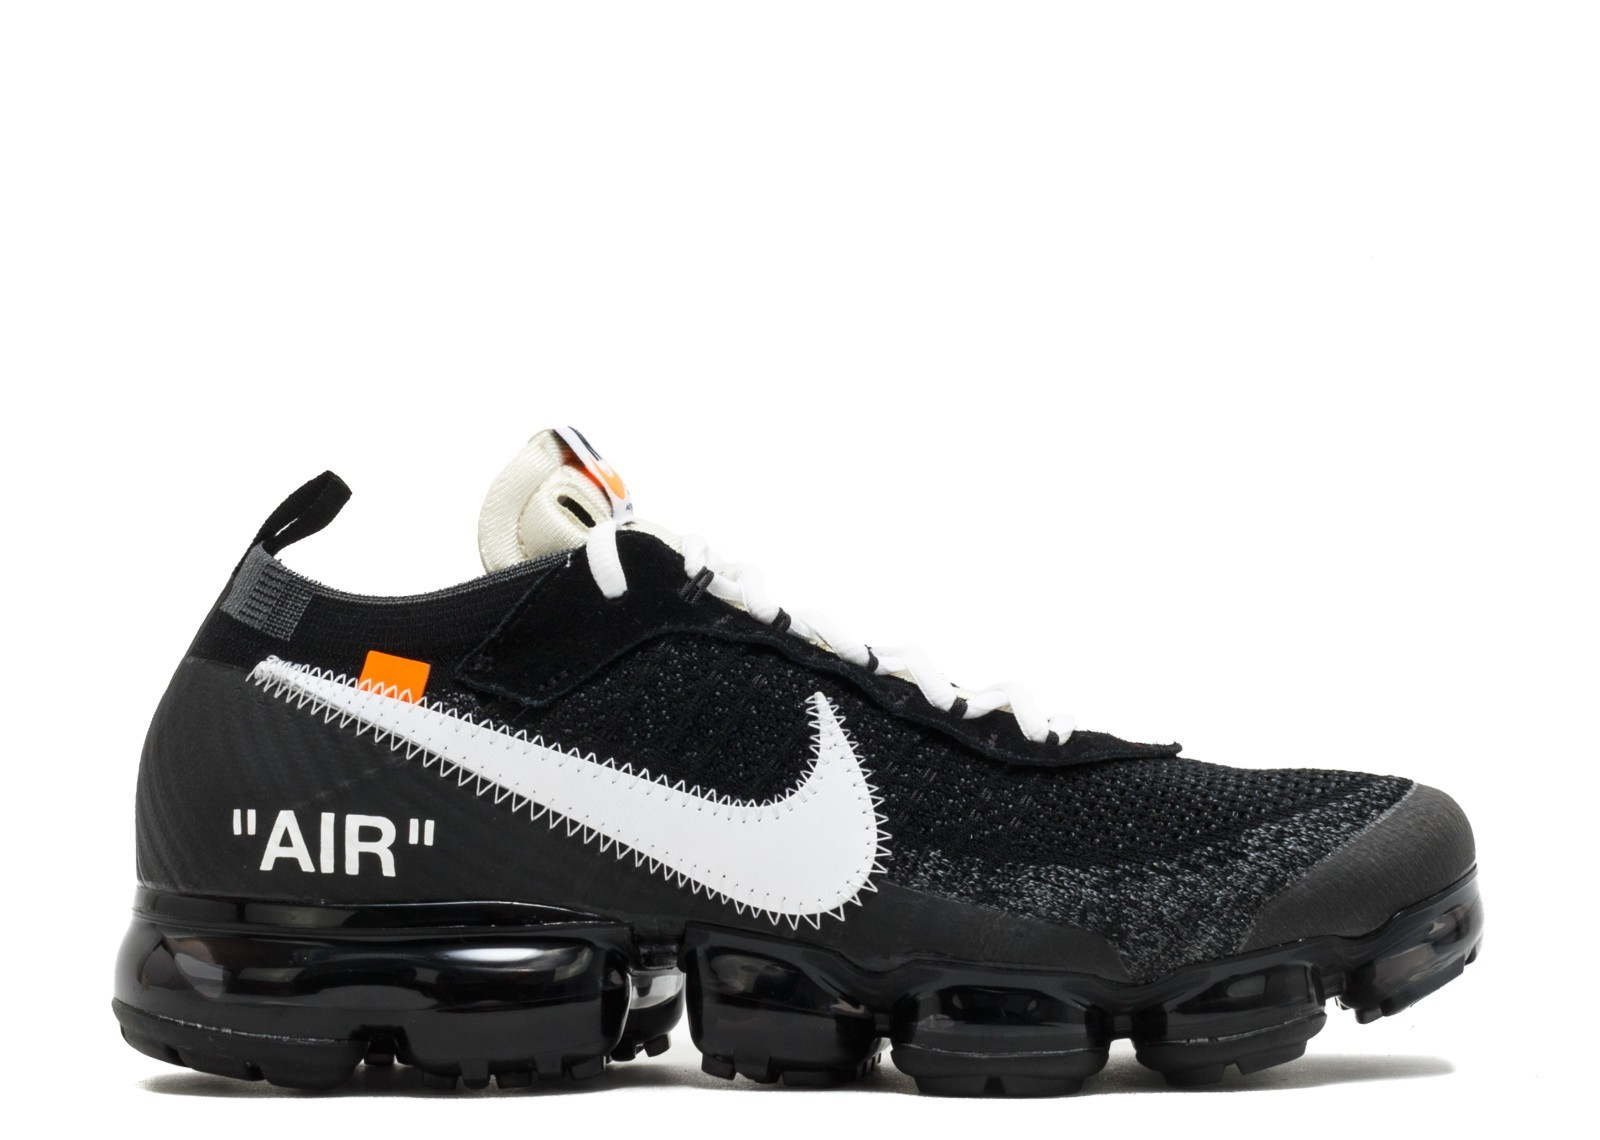 3635cc786e79a Best Cheap UAII Off White X Nike Air Vapormax Sneakers Sale on ...